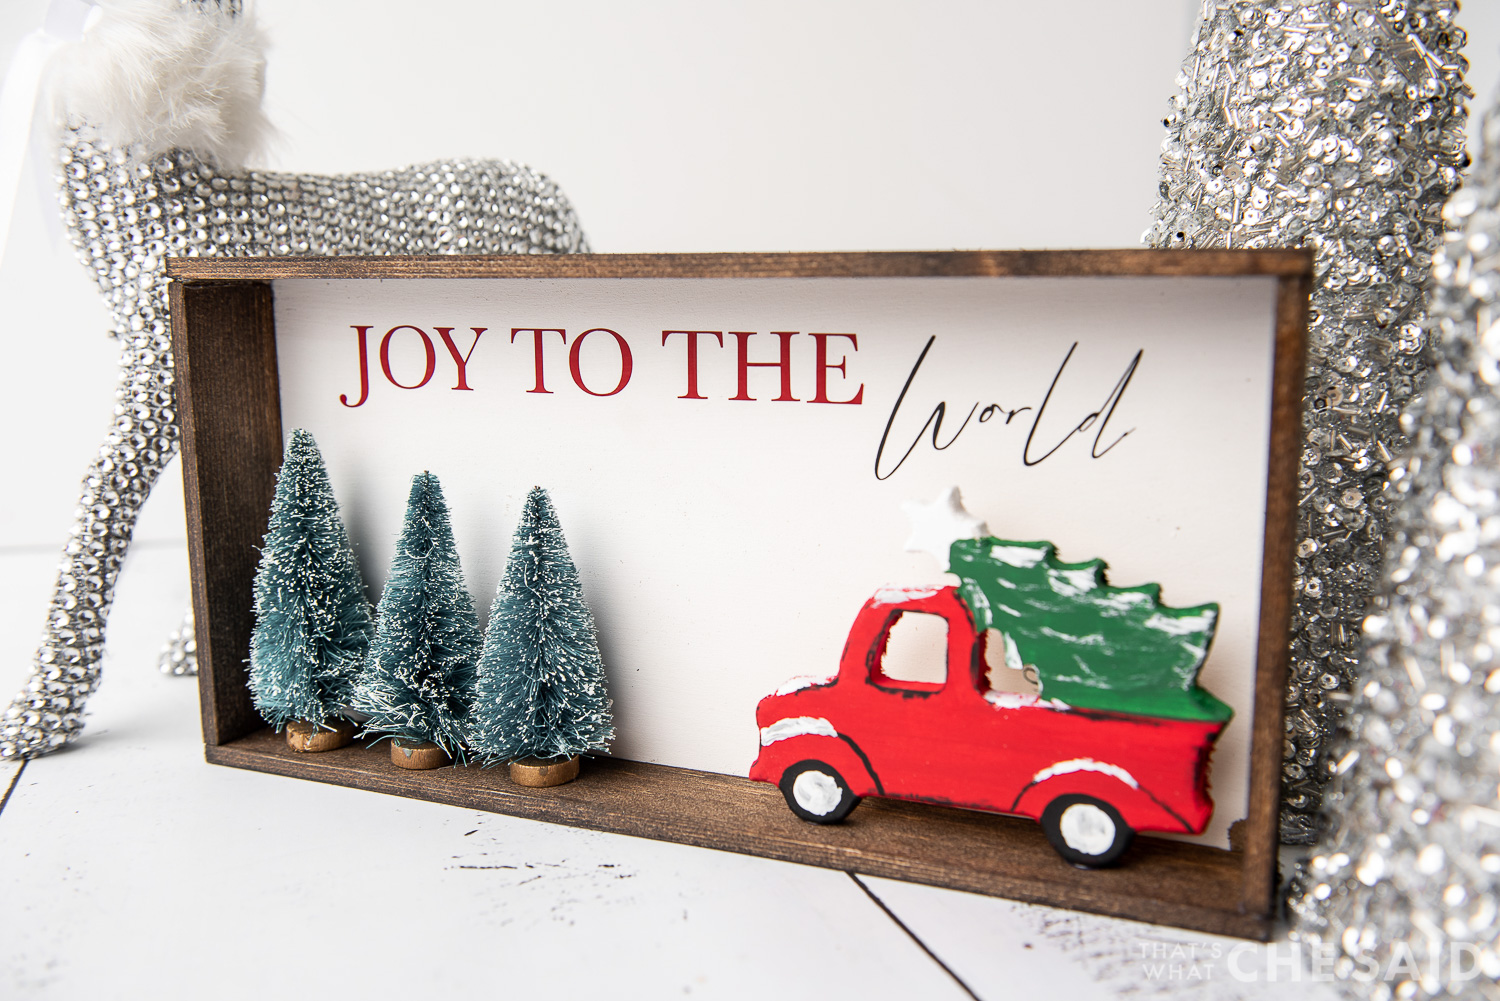 DIY Christmas Sign with Silver trees and deer in background - horizontal at slight angle